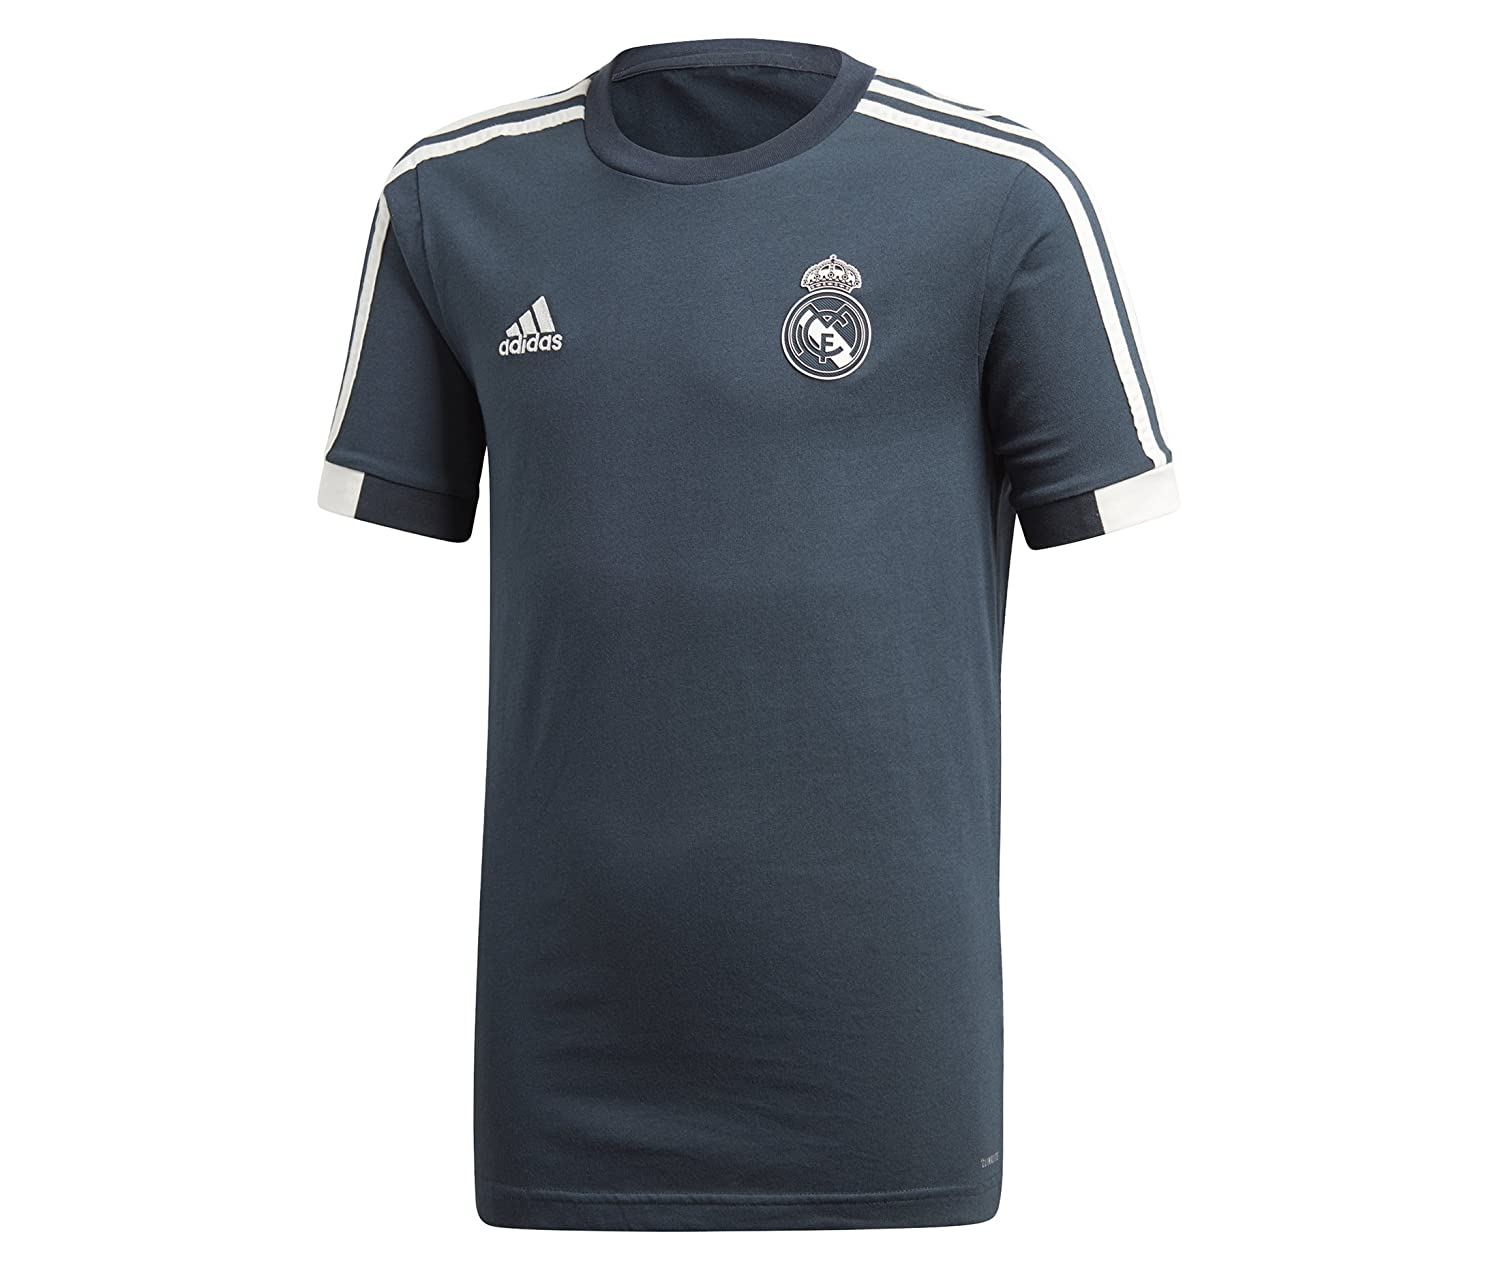 adidas Camiseta Real Madrid 2018-2019 Niño Tech onix-Black-Core white: Amazon.es: Deportes y aire libre